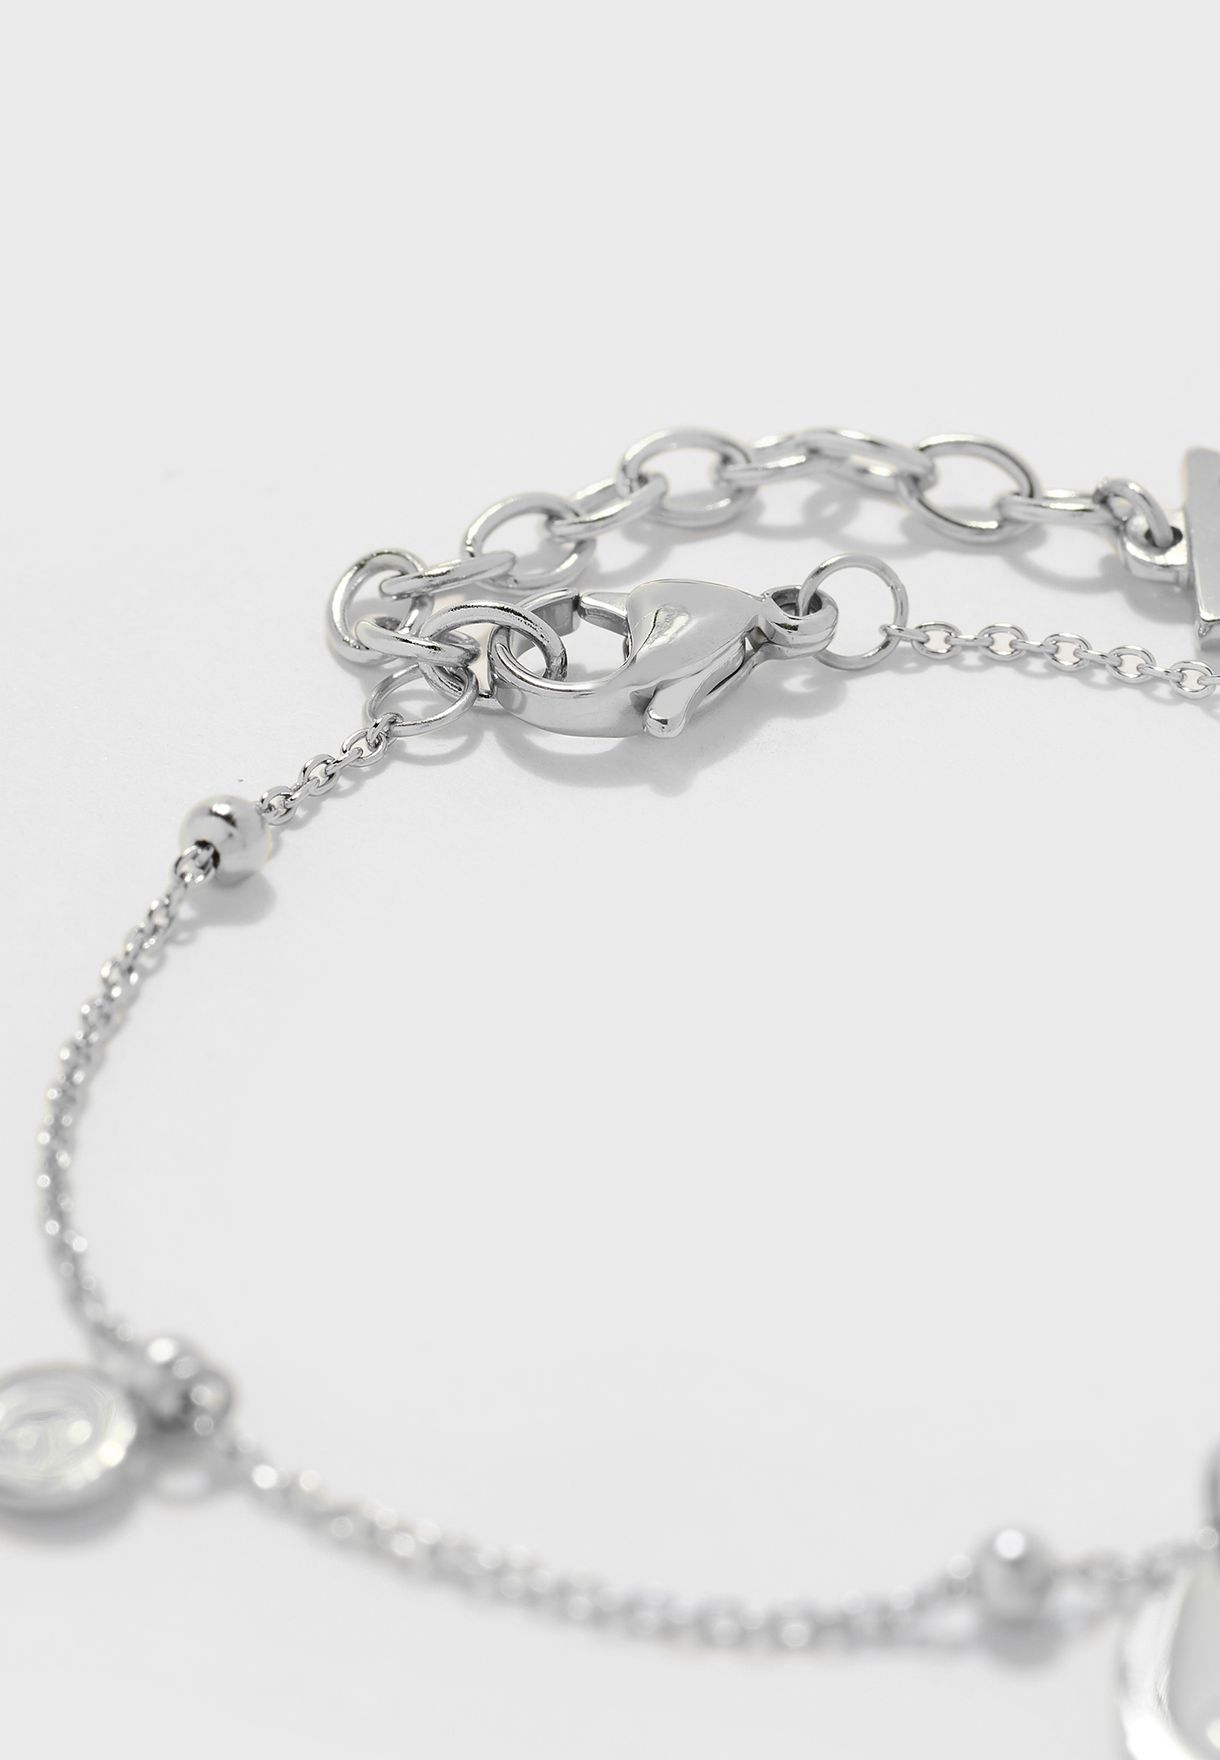 Chain And Charms Bracelet